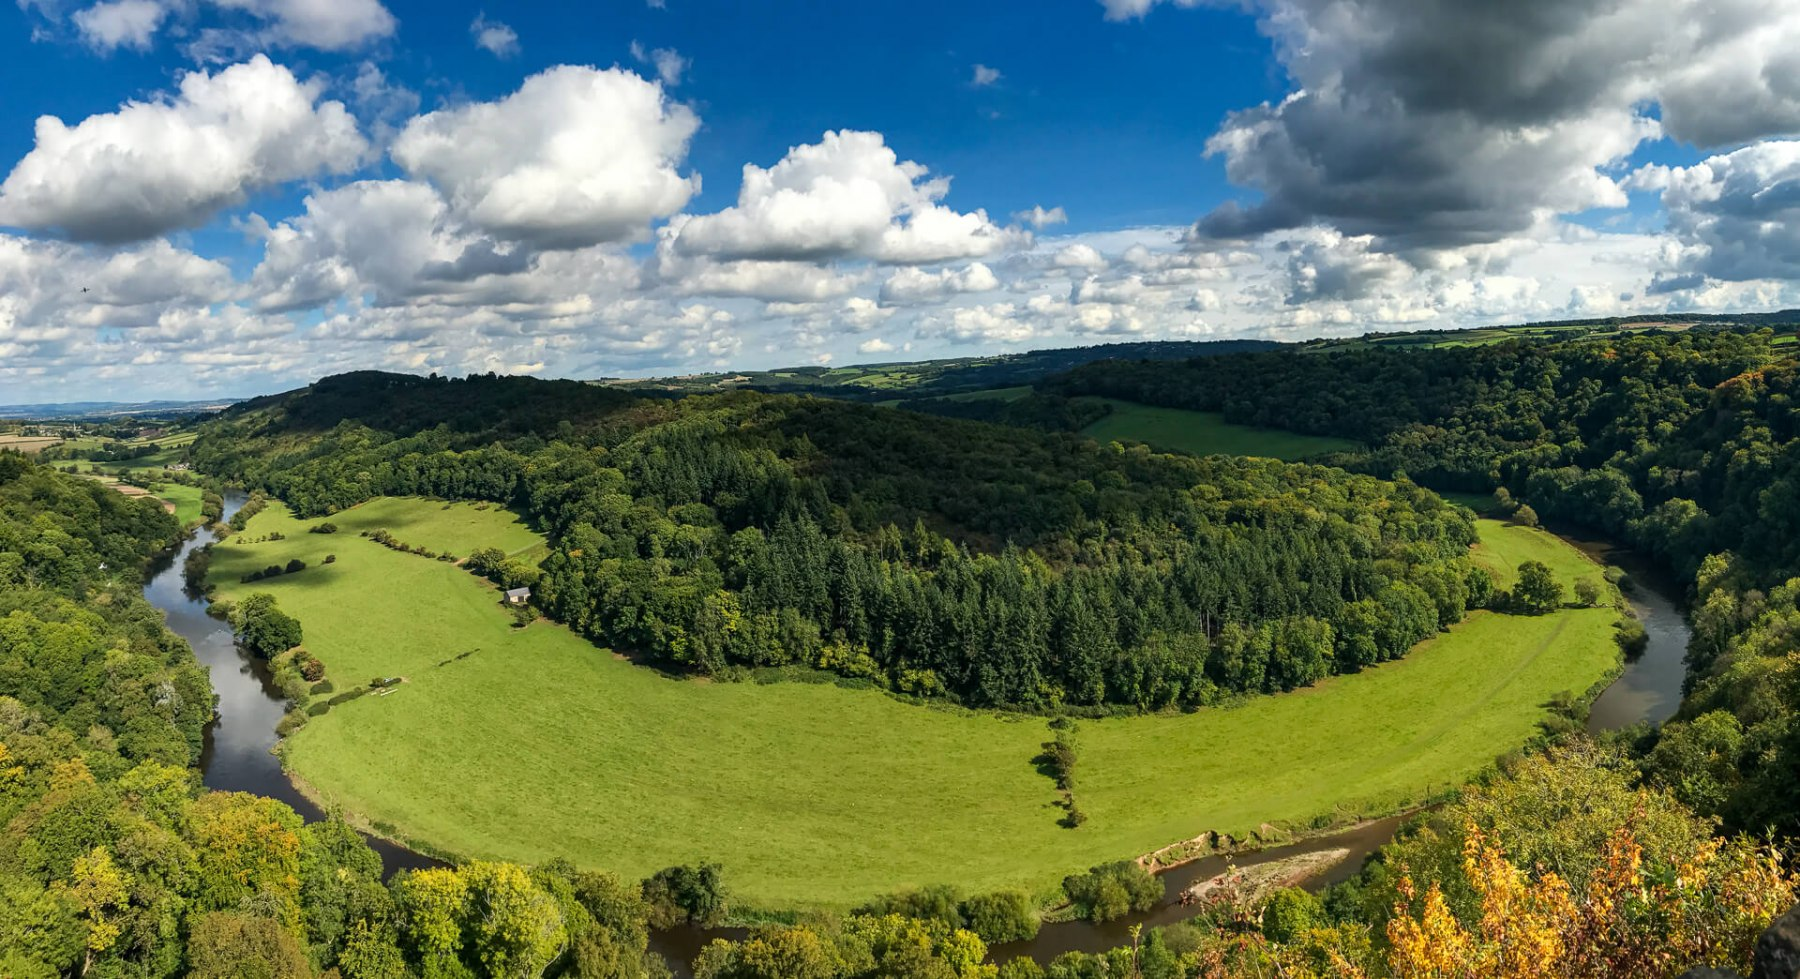 panoramic-view-of-winding-river-wye-from-symonds-yat-viewpoint